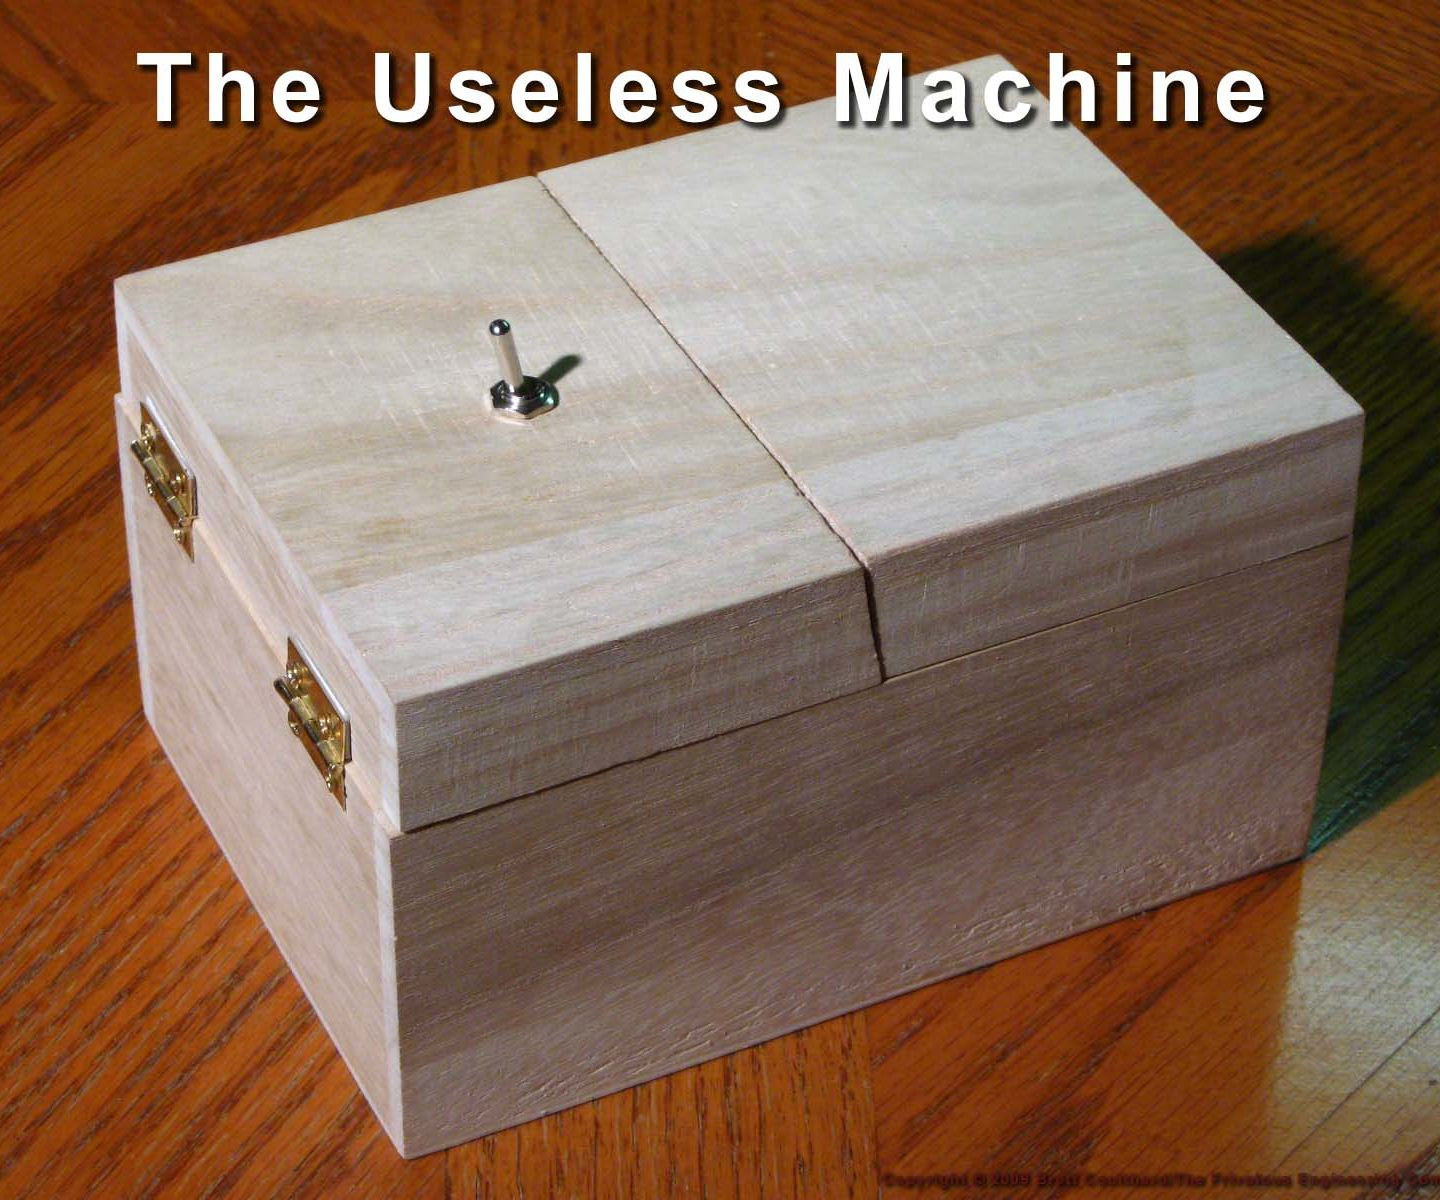 The Most Useless Machine EVER!